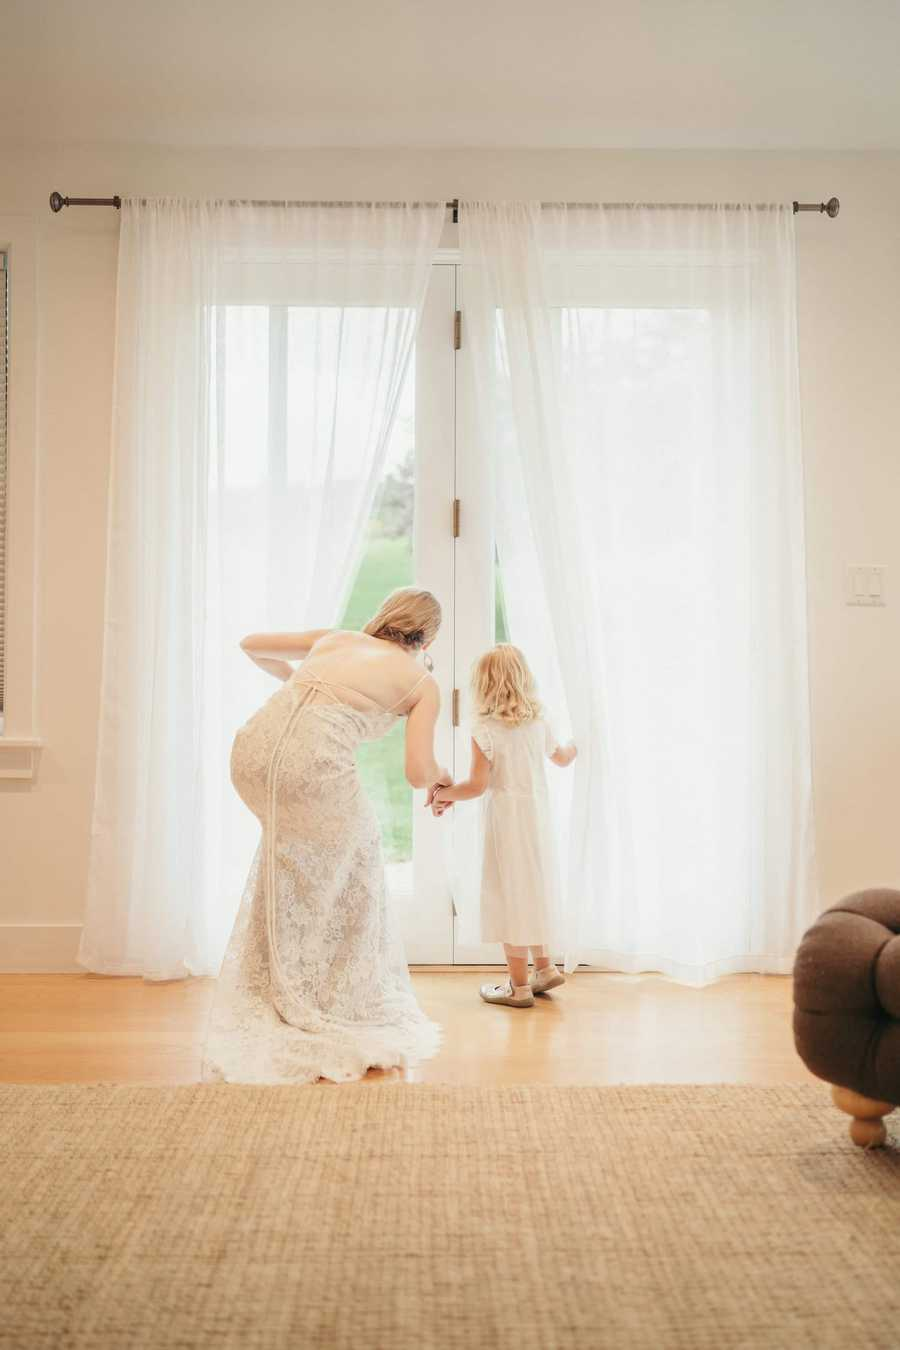 Bride and flower girl pull back curtains to look through glass door before wedding ceremony.